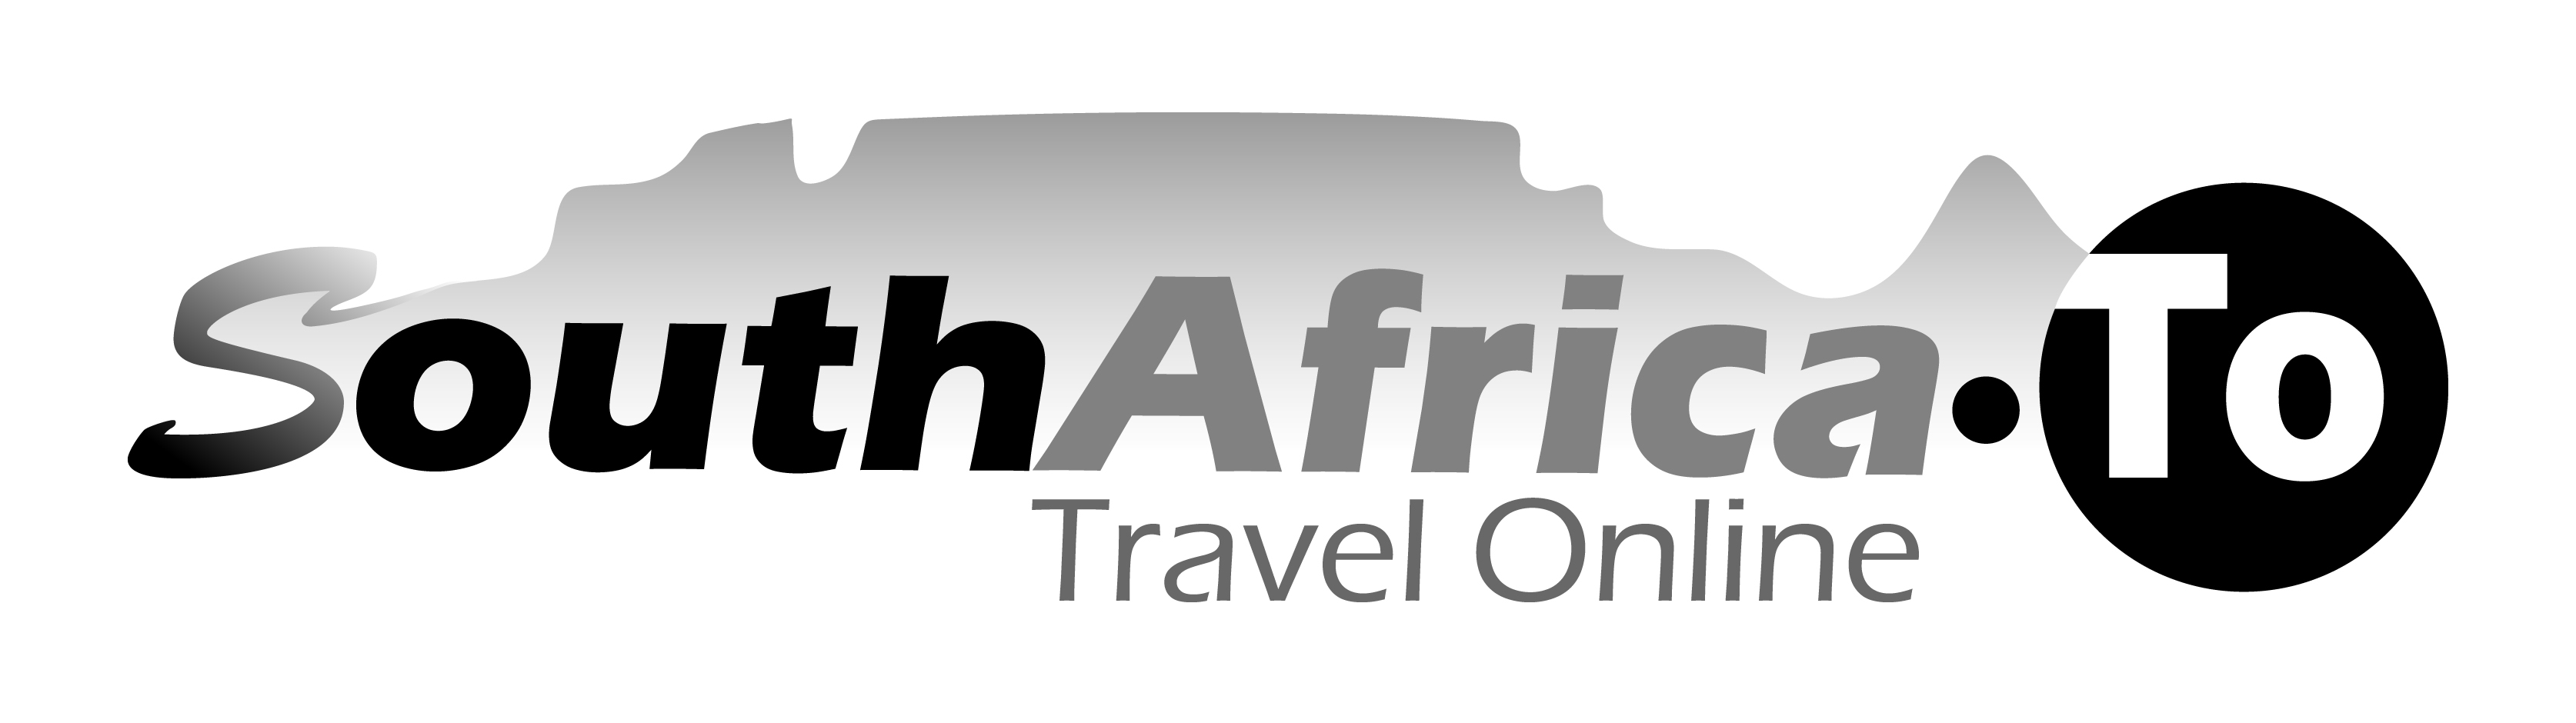 South Travel Online logo